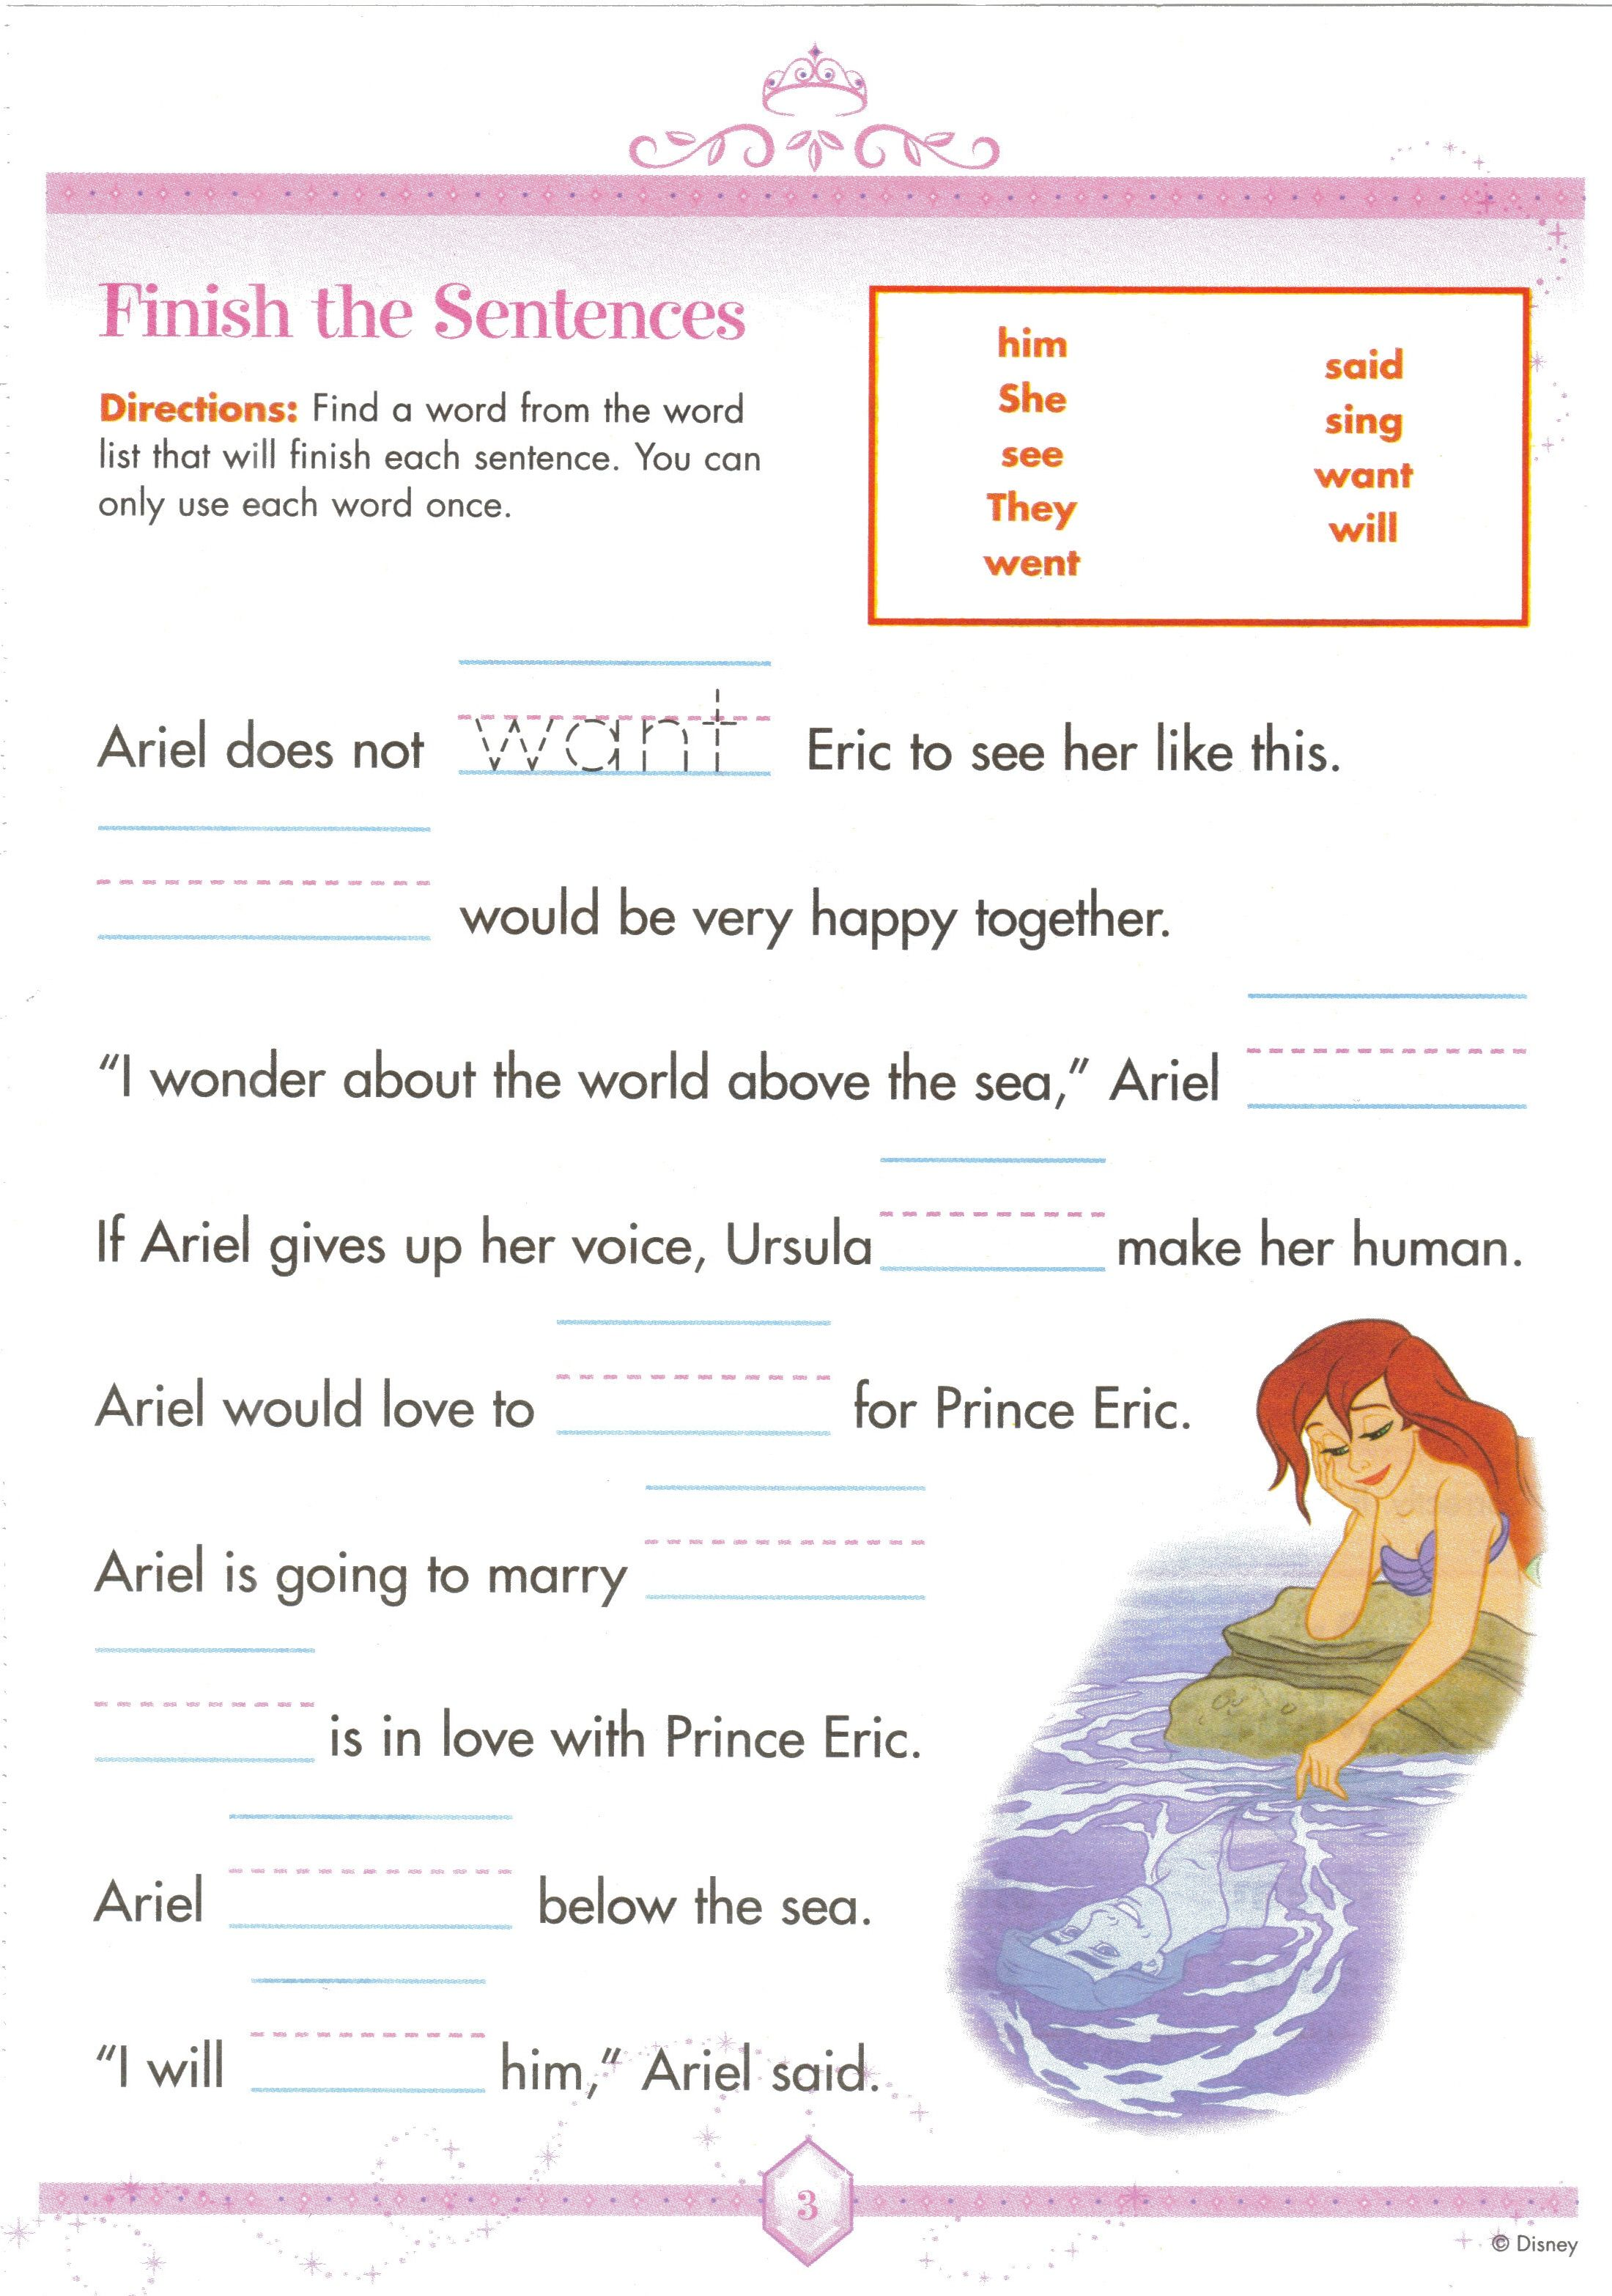 Weirdmailus  Splendid  Images About Worksheets On Pinterest  Fun Facts For Kids  With Entrancing  Images About Worksheets On Pinterest  Fun Facts For Kids Earth Day Worksheets And Jungles With Divine Horticulture Worksheets Also Water Cycle Printable Worksheet In Addition Irs W Worksheet And Teacher Worksheets Math As Well As Budget Worksheets Excel Additionally Handwriting Worksheets Nd Grade From Pinterestcom With Weirdmailus  Entrancing  Images About Worksheets On Pinterest  Fun Facts For Kids  With Divine  Images About Worksheets On Pinterest  Fun Facts For Kids Earth Day Worksheets And Jungles And Splendid Horticulture Worksheets Also Water Cycle Printable Worksheet In Addition Irs W Worksheet From Pinterestcom